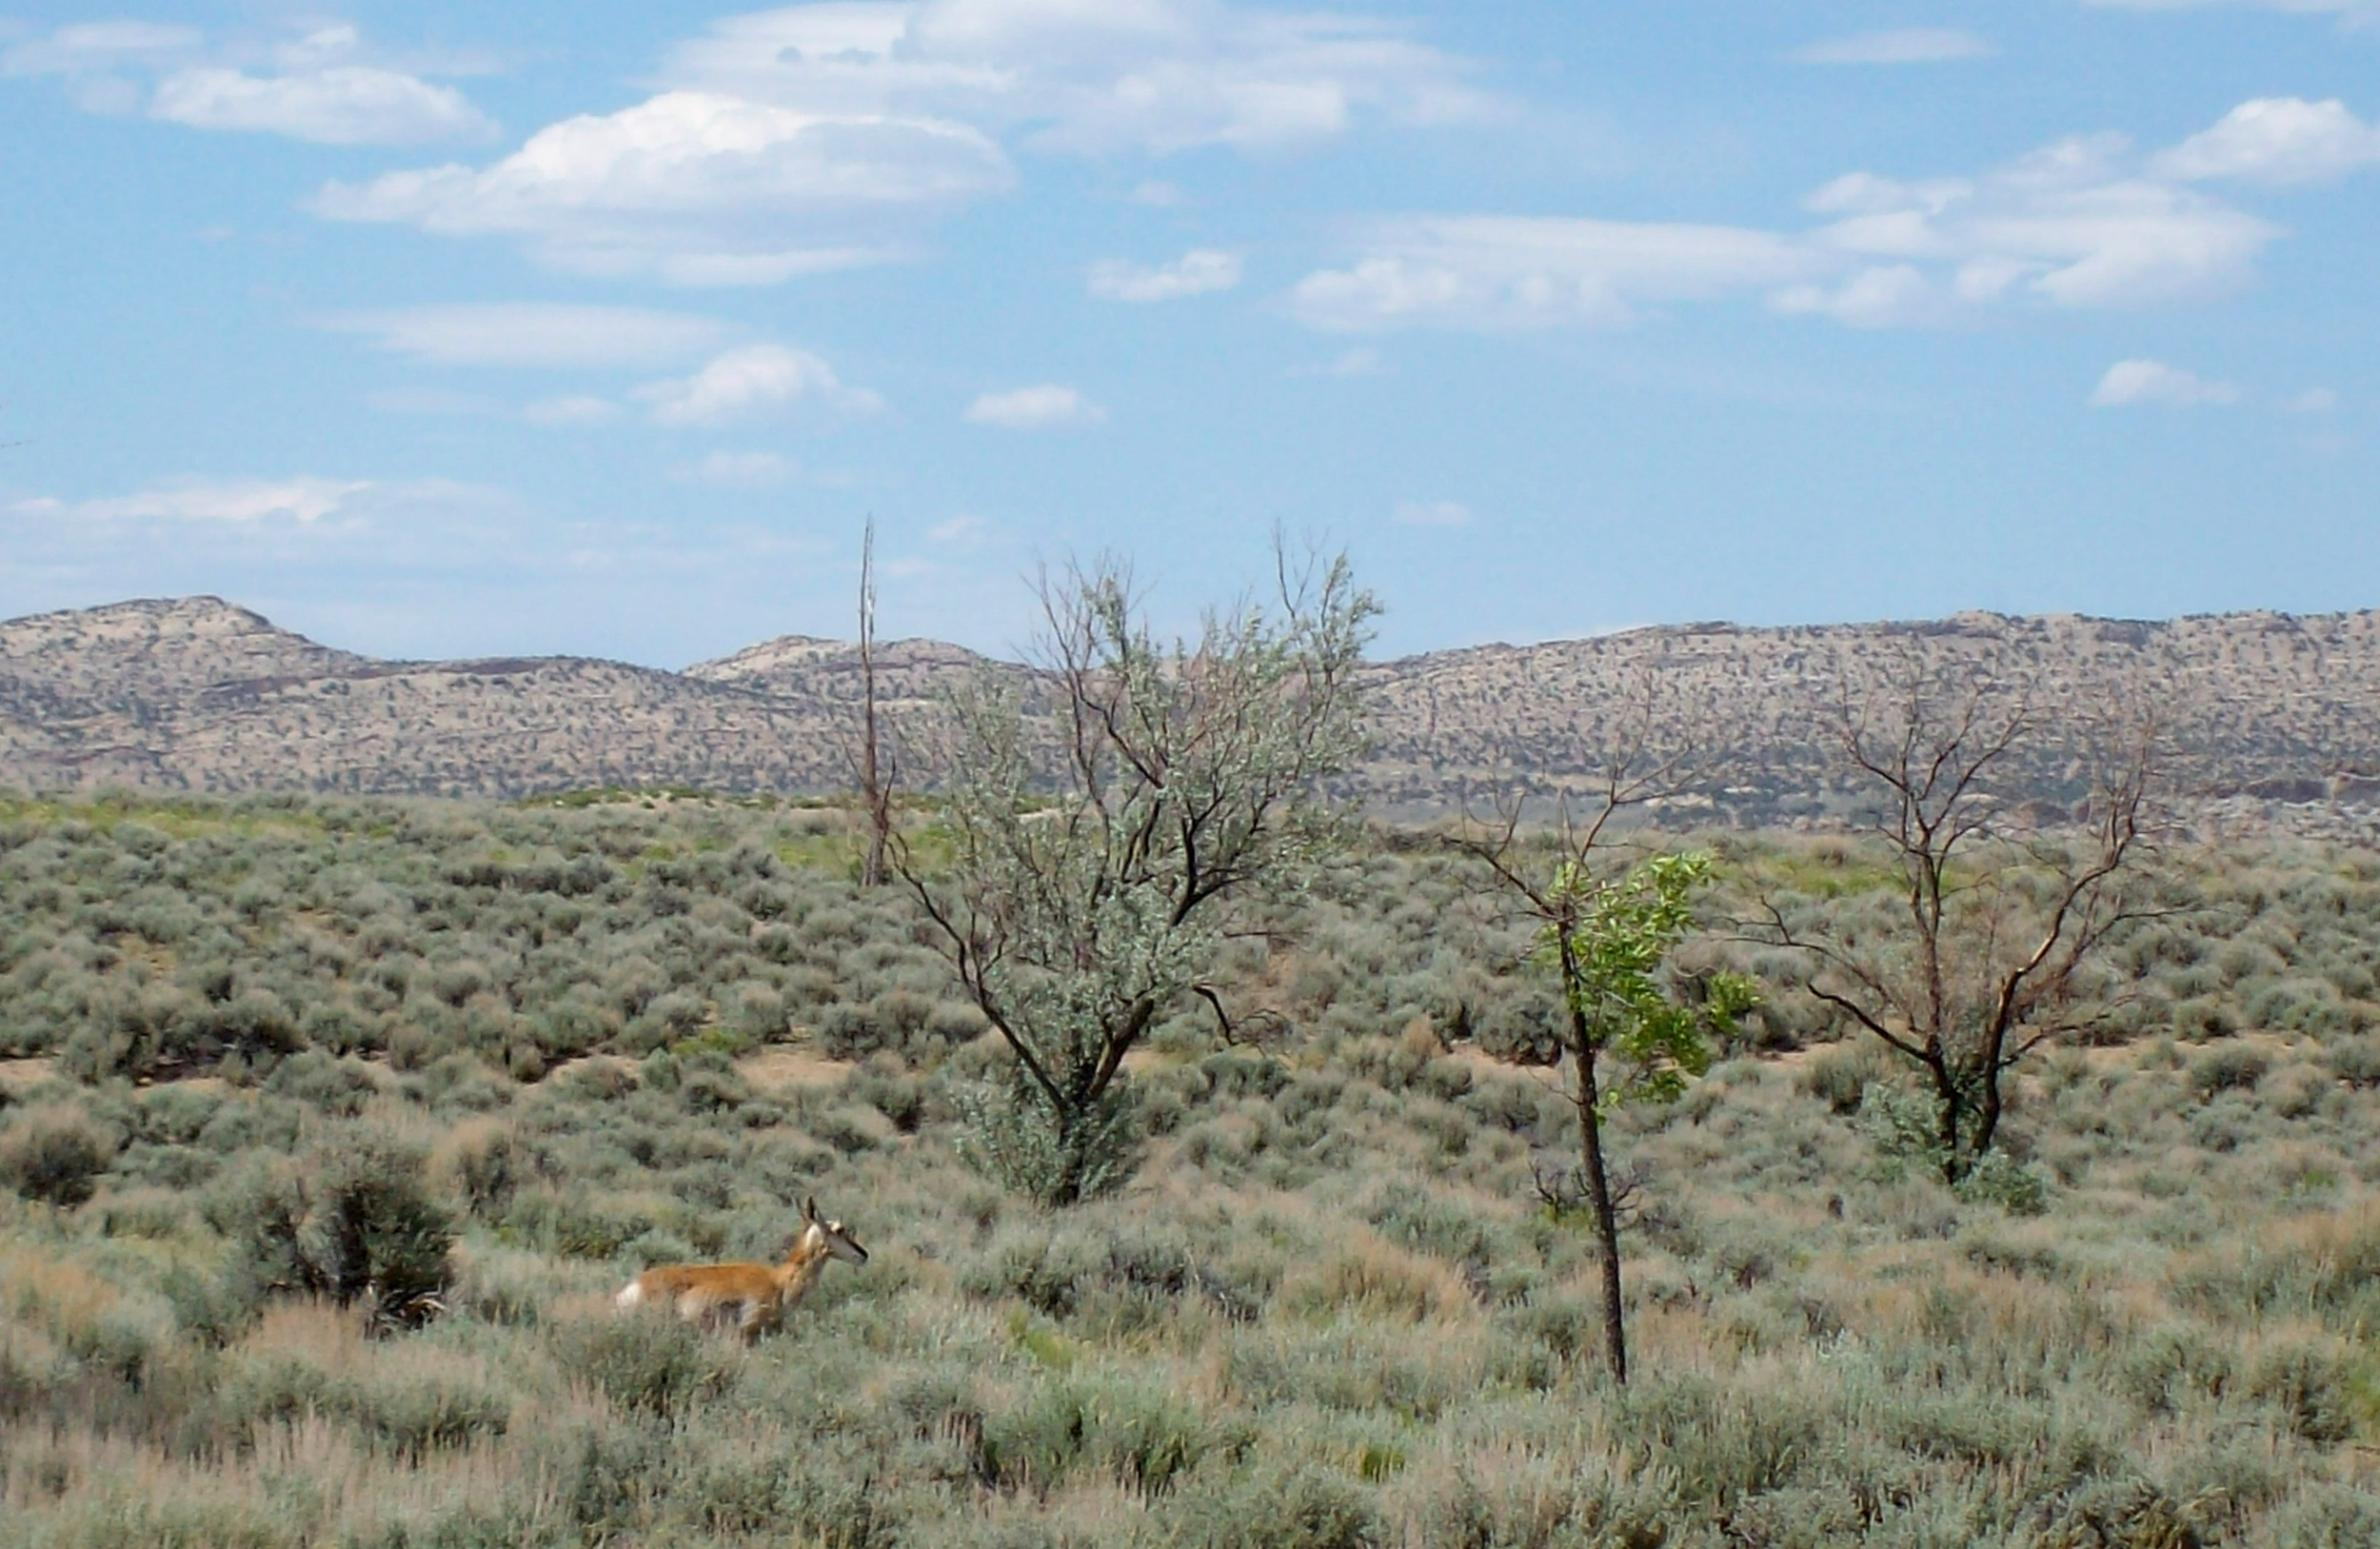 Antelope are a common sight